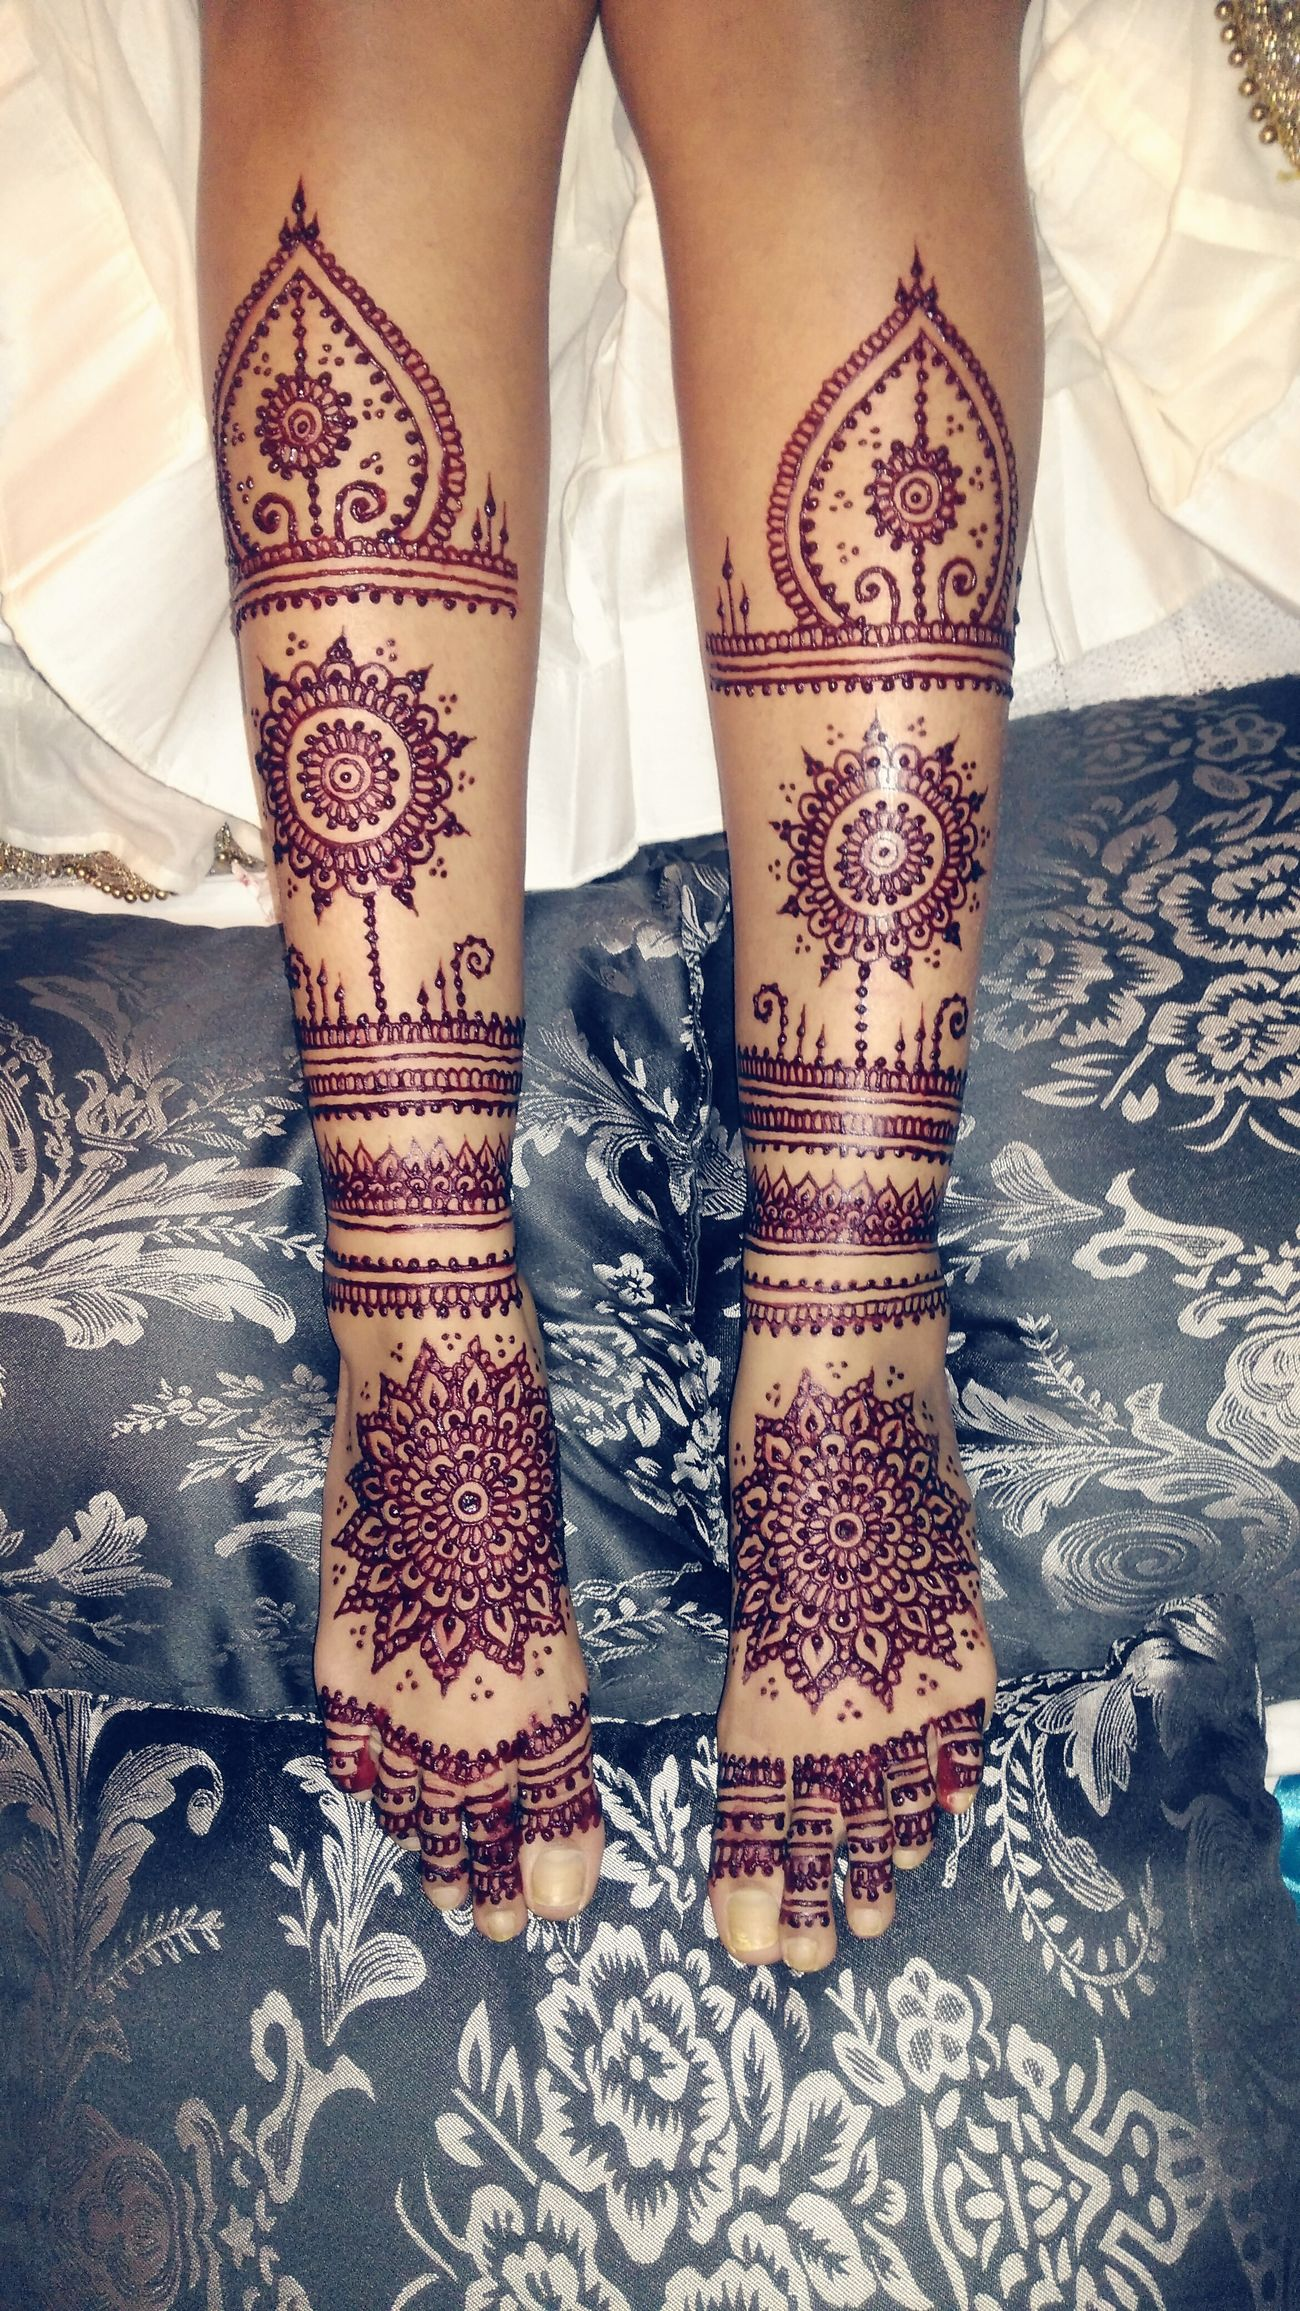 Wedding henna i did the other night! Henna Heena Mehendi Mehndi Bridal Indian Wedding Indian Wedding Bride Henna Tattoo Henna Artist Bridal Henna